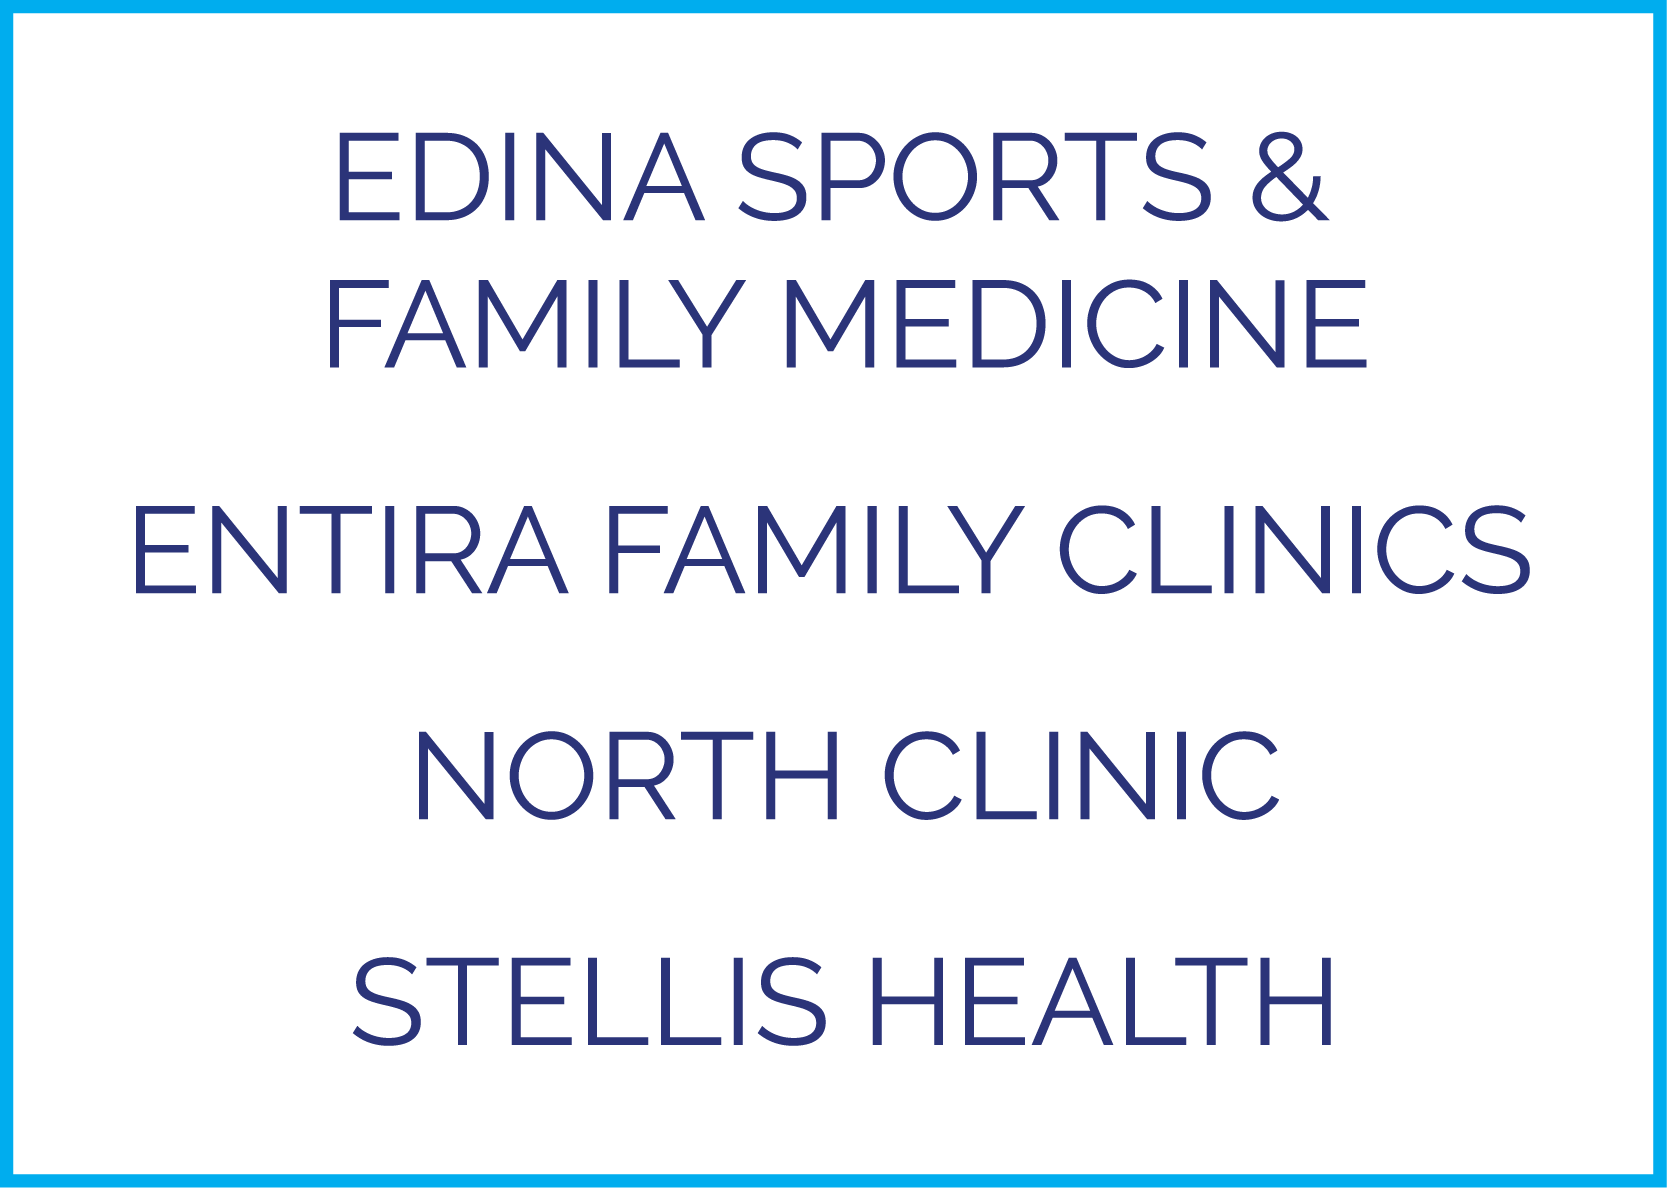 Independent Practices: Edina Sports & Family Medicine, Entira Family Clinics, North Clinic and Stellis Health